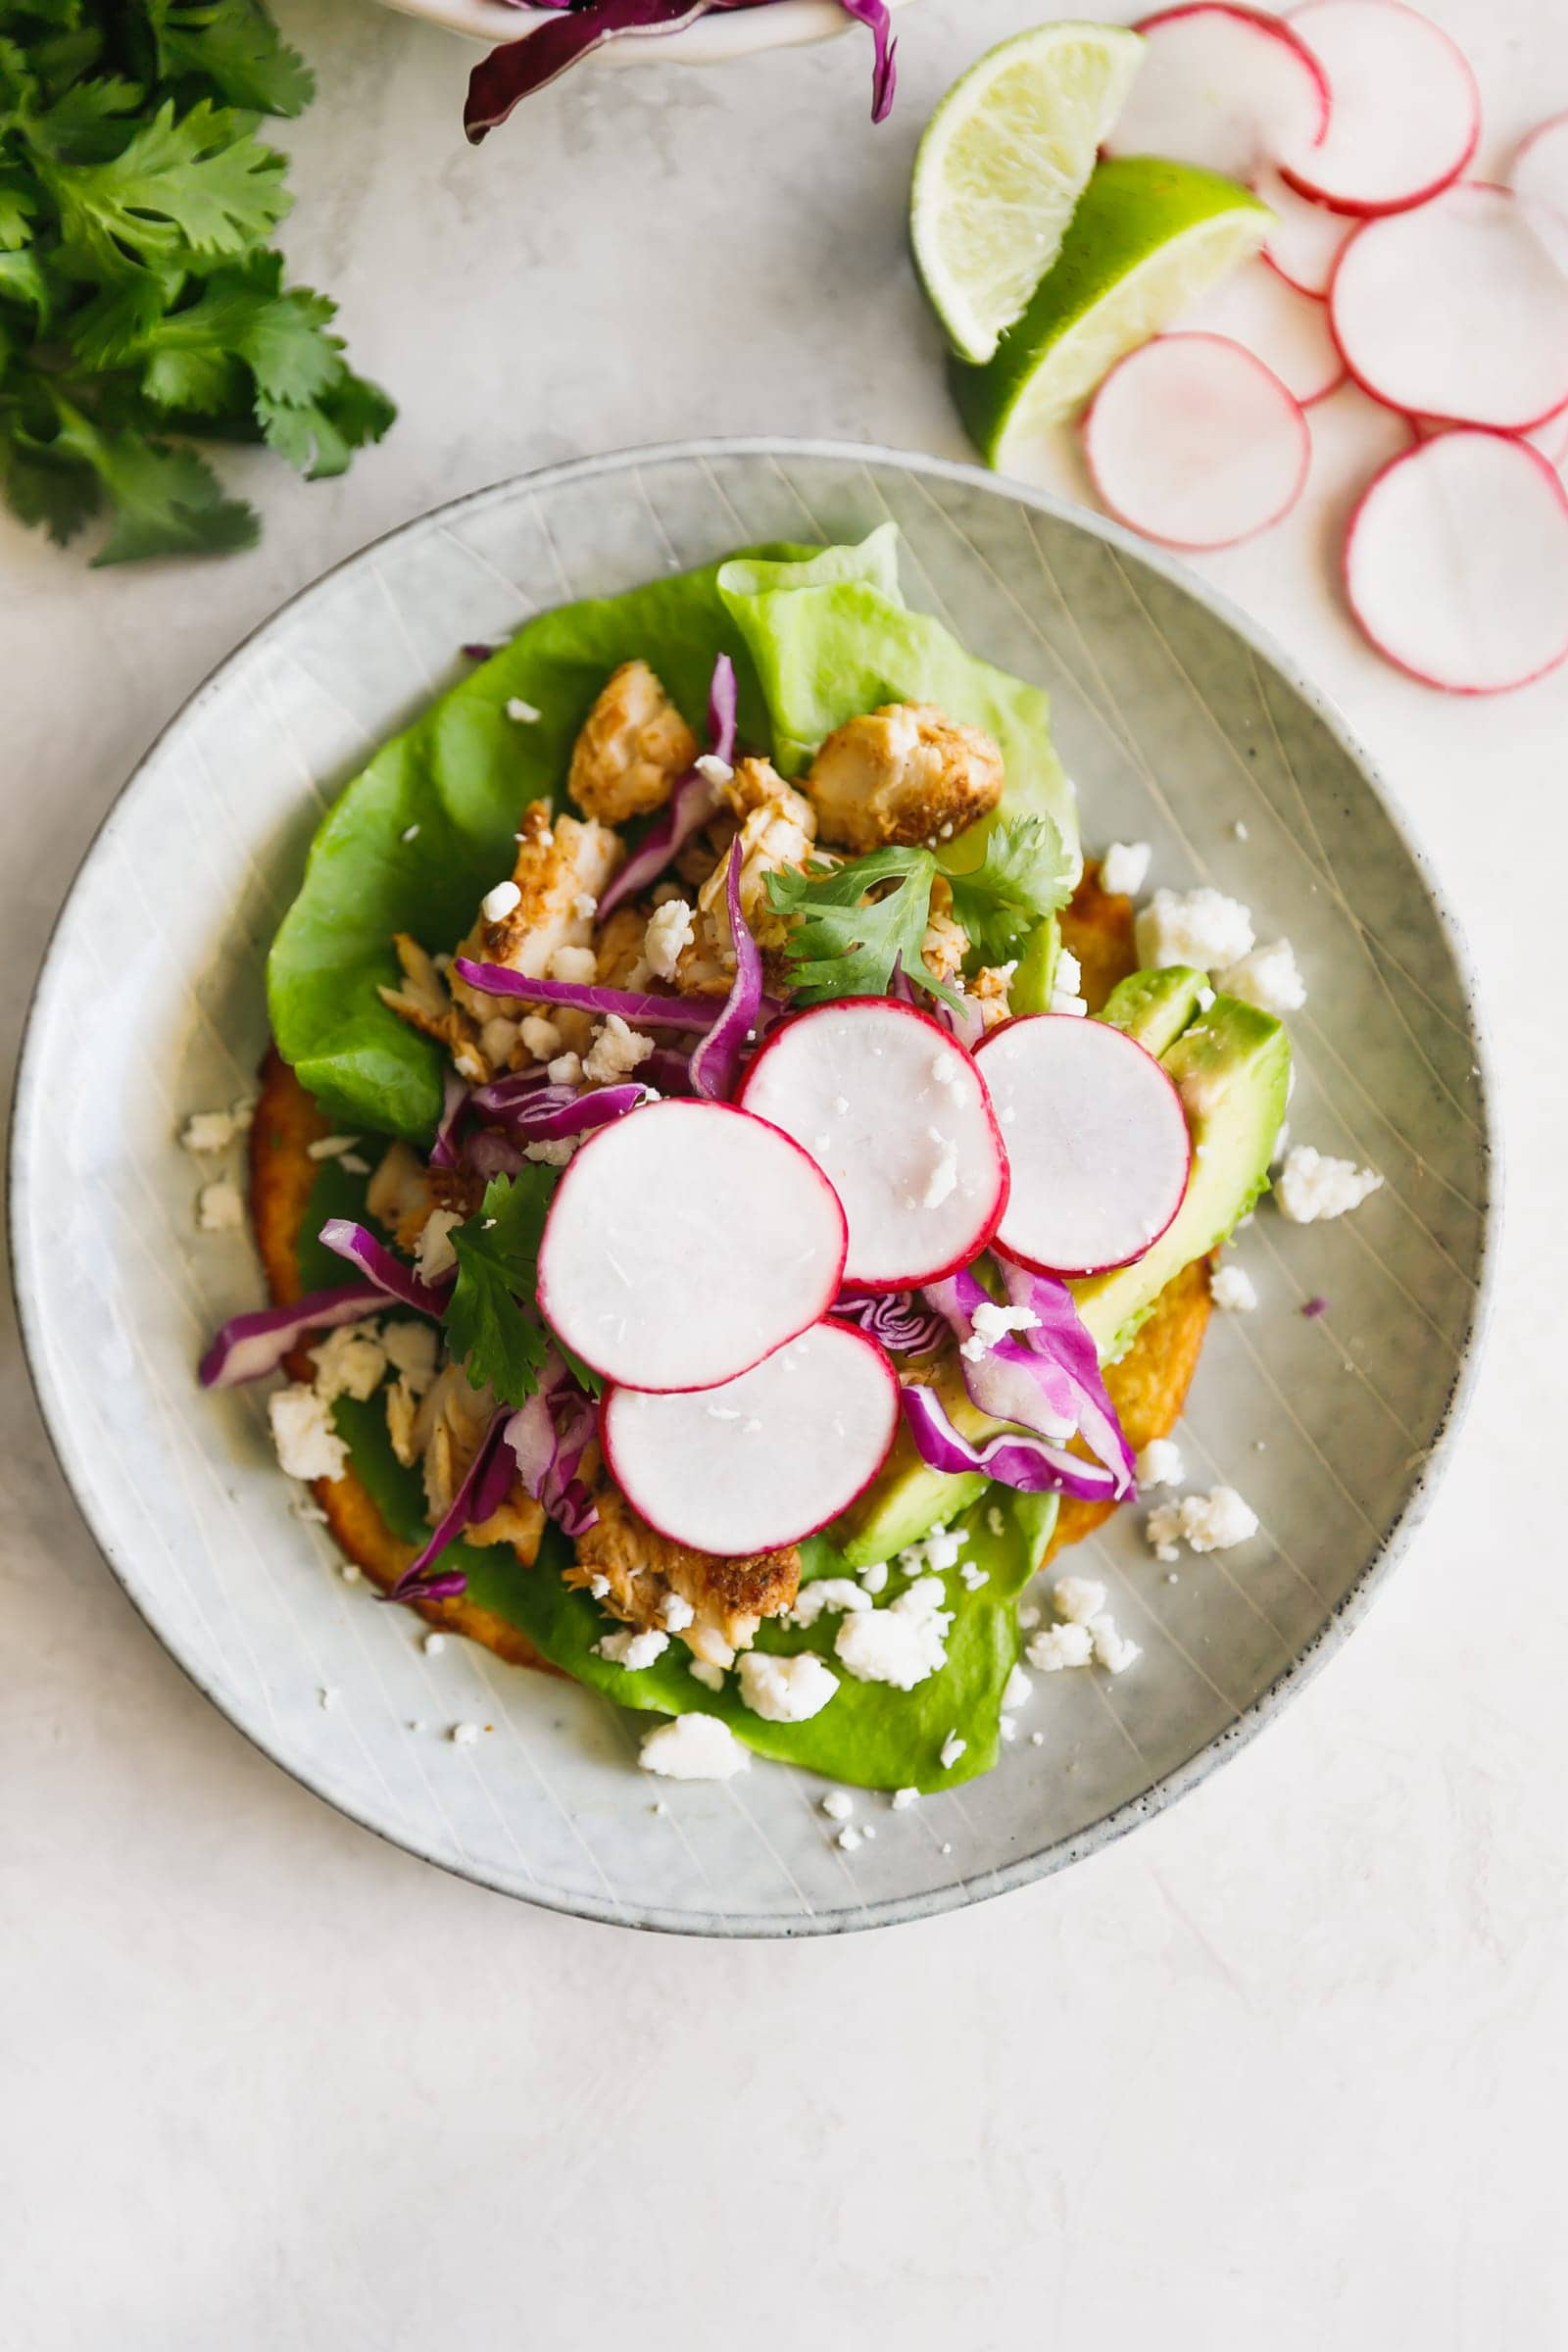 Flat, fried corn tortillas (aka tostadas) topped with butter lettuce, avocado, flaky white fish, red cabbage, jicama, radishes, cilantro and queso fresco!